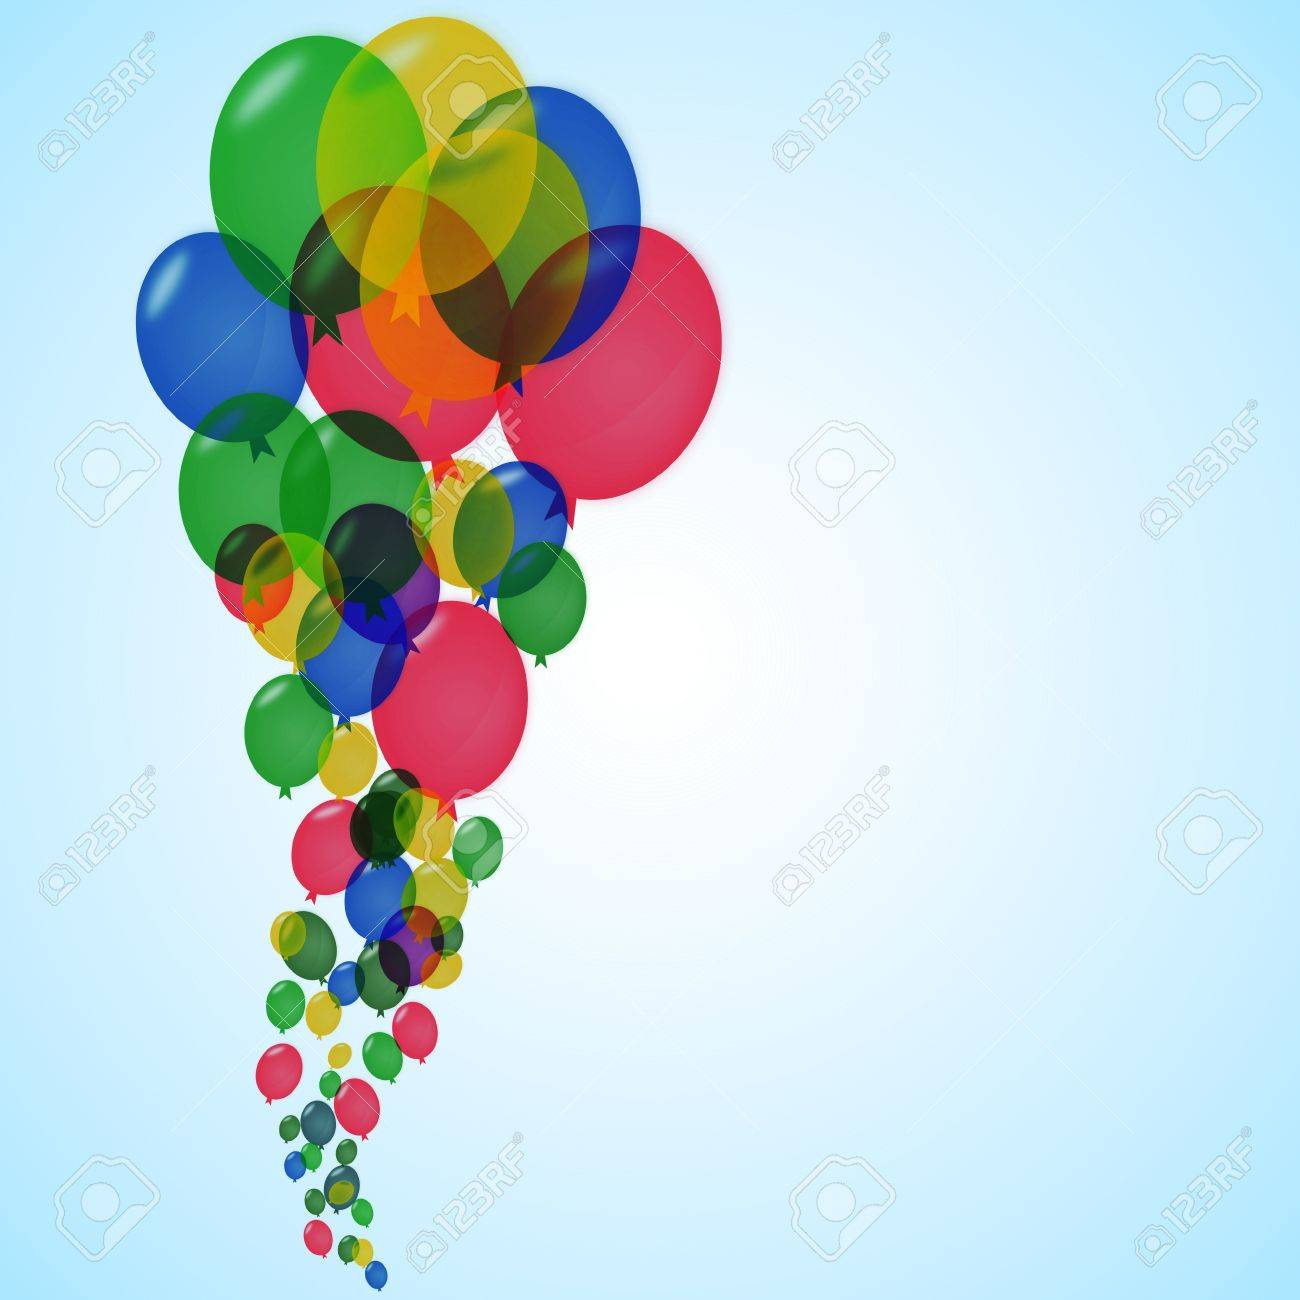 Awesome balloons for party advertisement and for funny life Stock Photo - 14250040